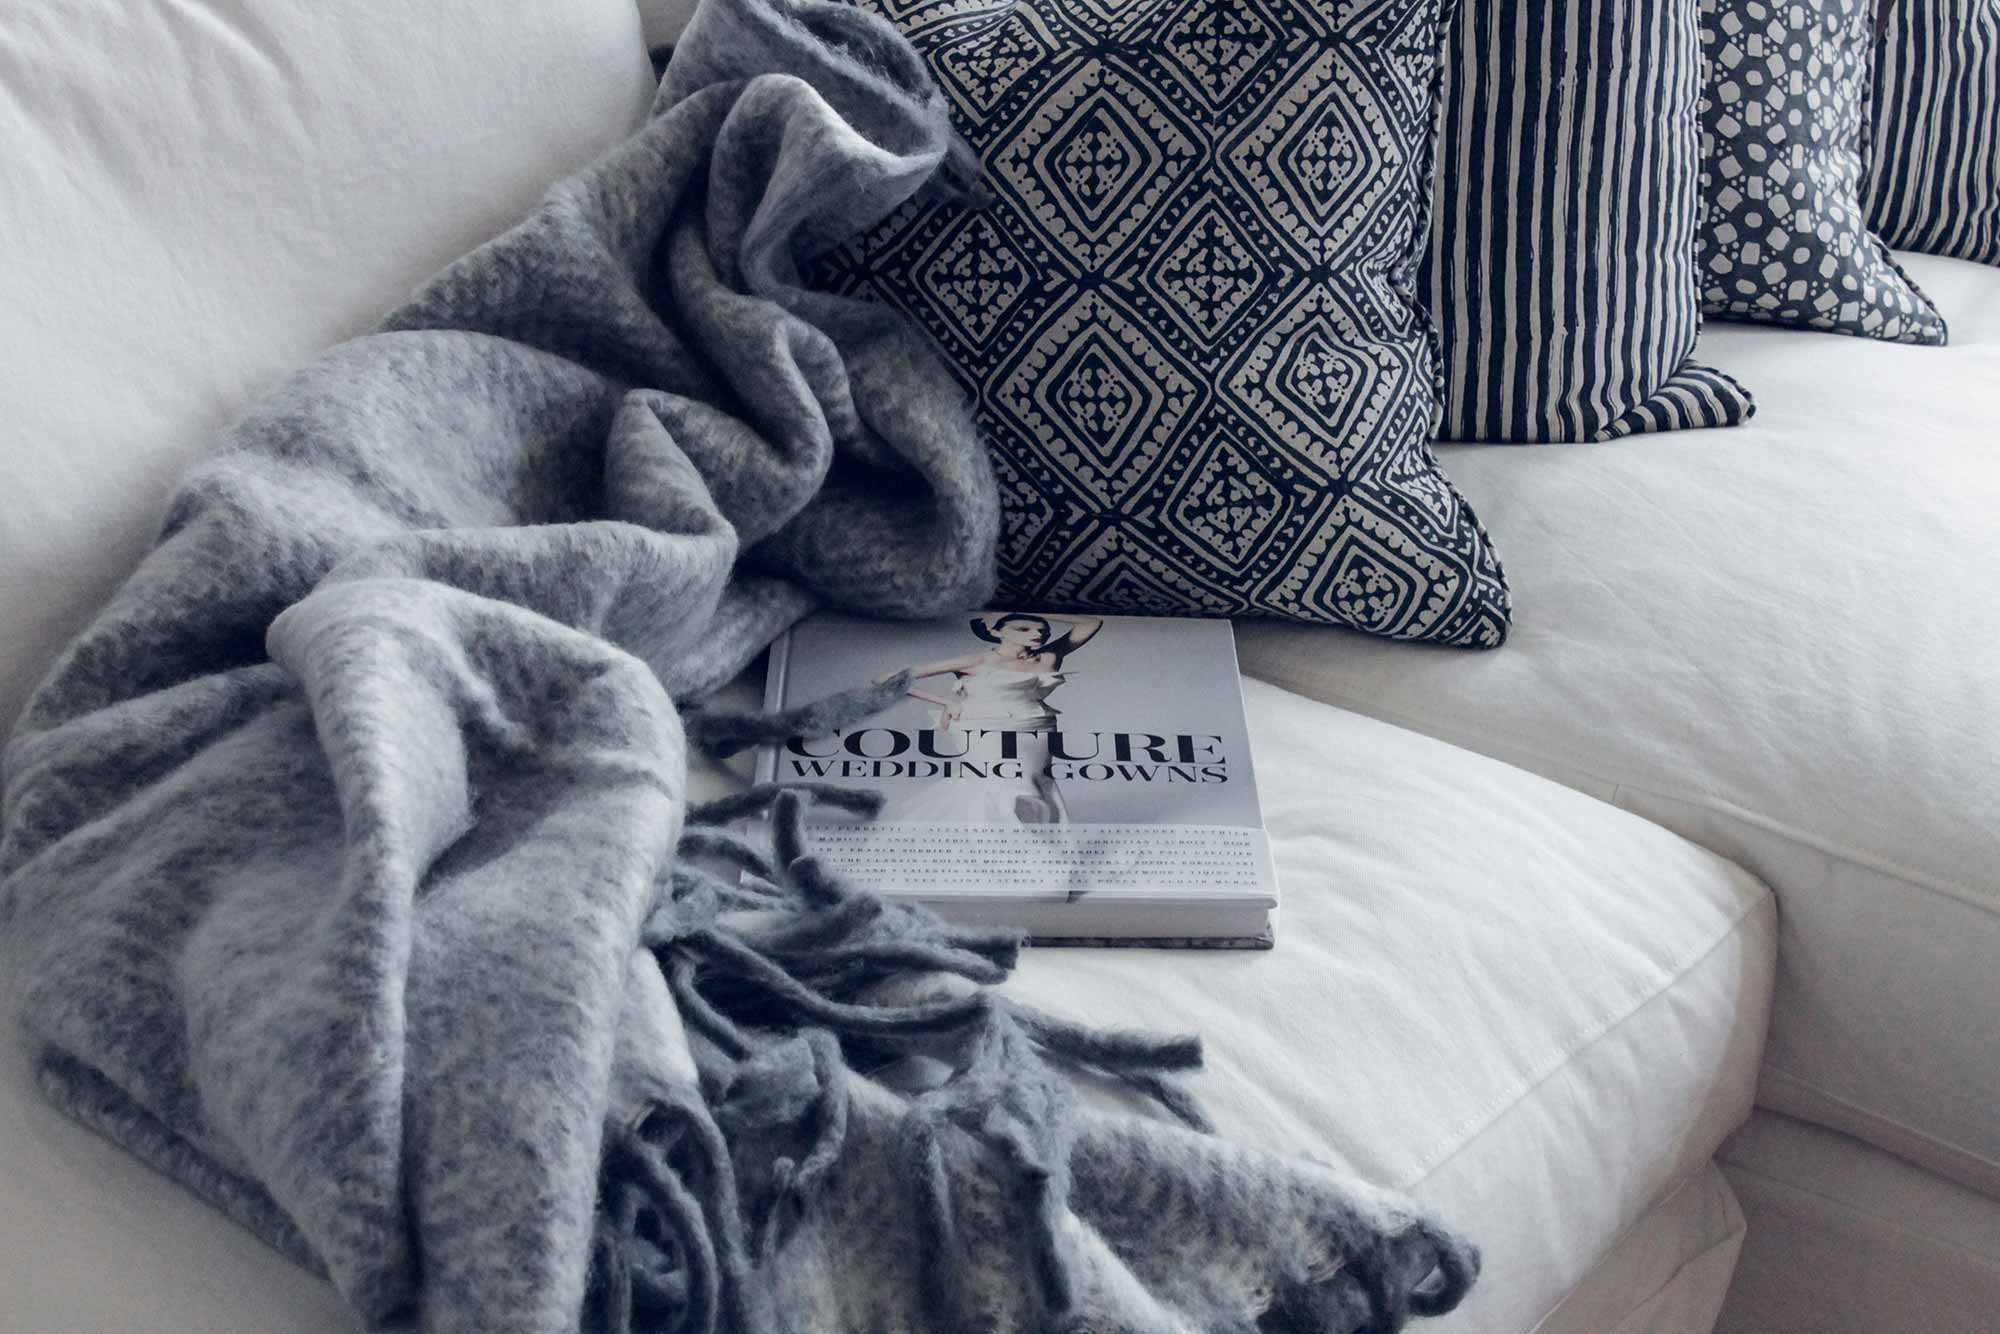 Cozy couch with blanket and book